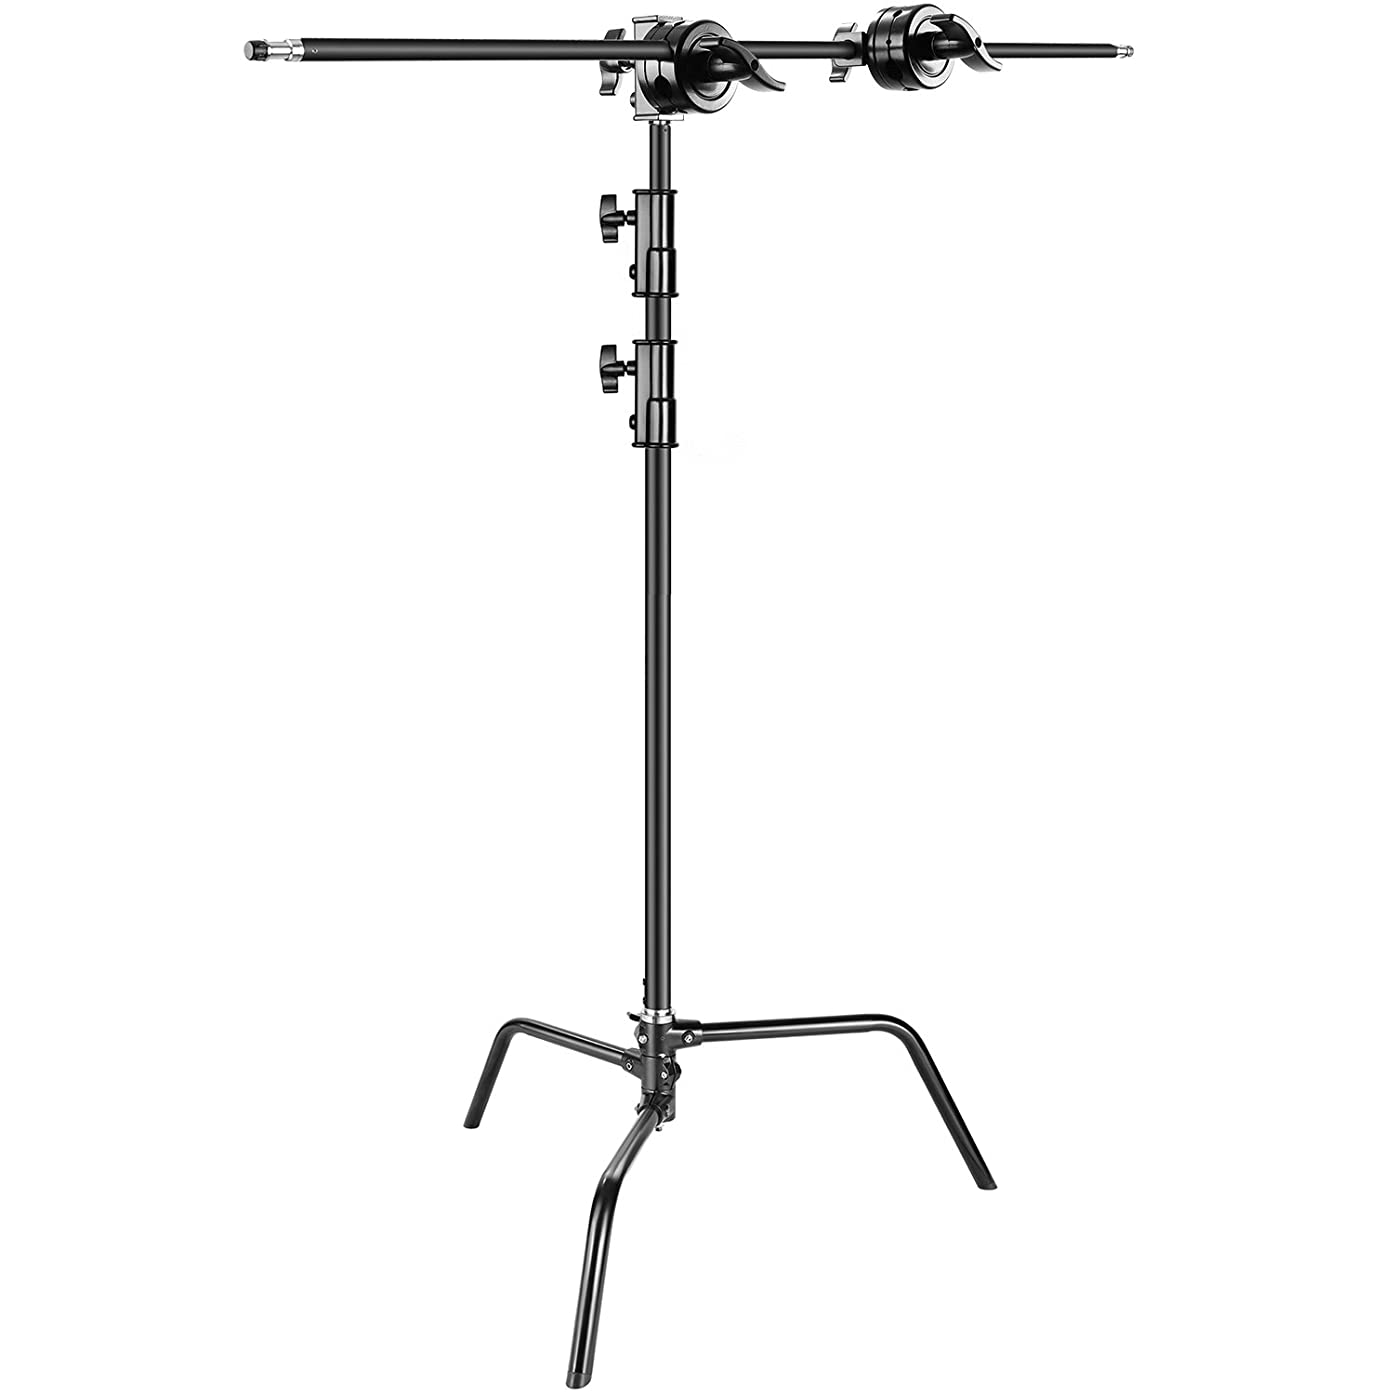 Neewer Photo Studio Heavy Duty 10 feet/3 meters Adjustable C-Stand, 3.5 feet/1 meter Holding Arm, 2 Pieces Grip Head for Video Reflector, Monolight and Other Photographic Equipment (Black)